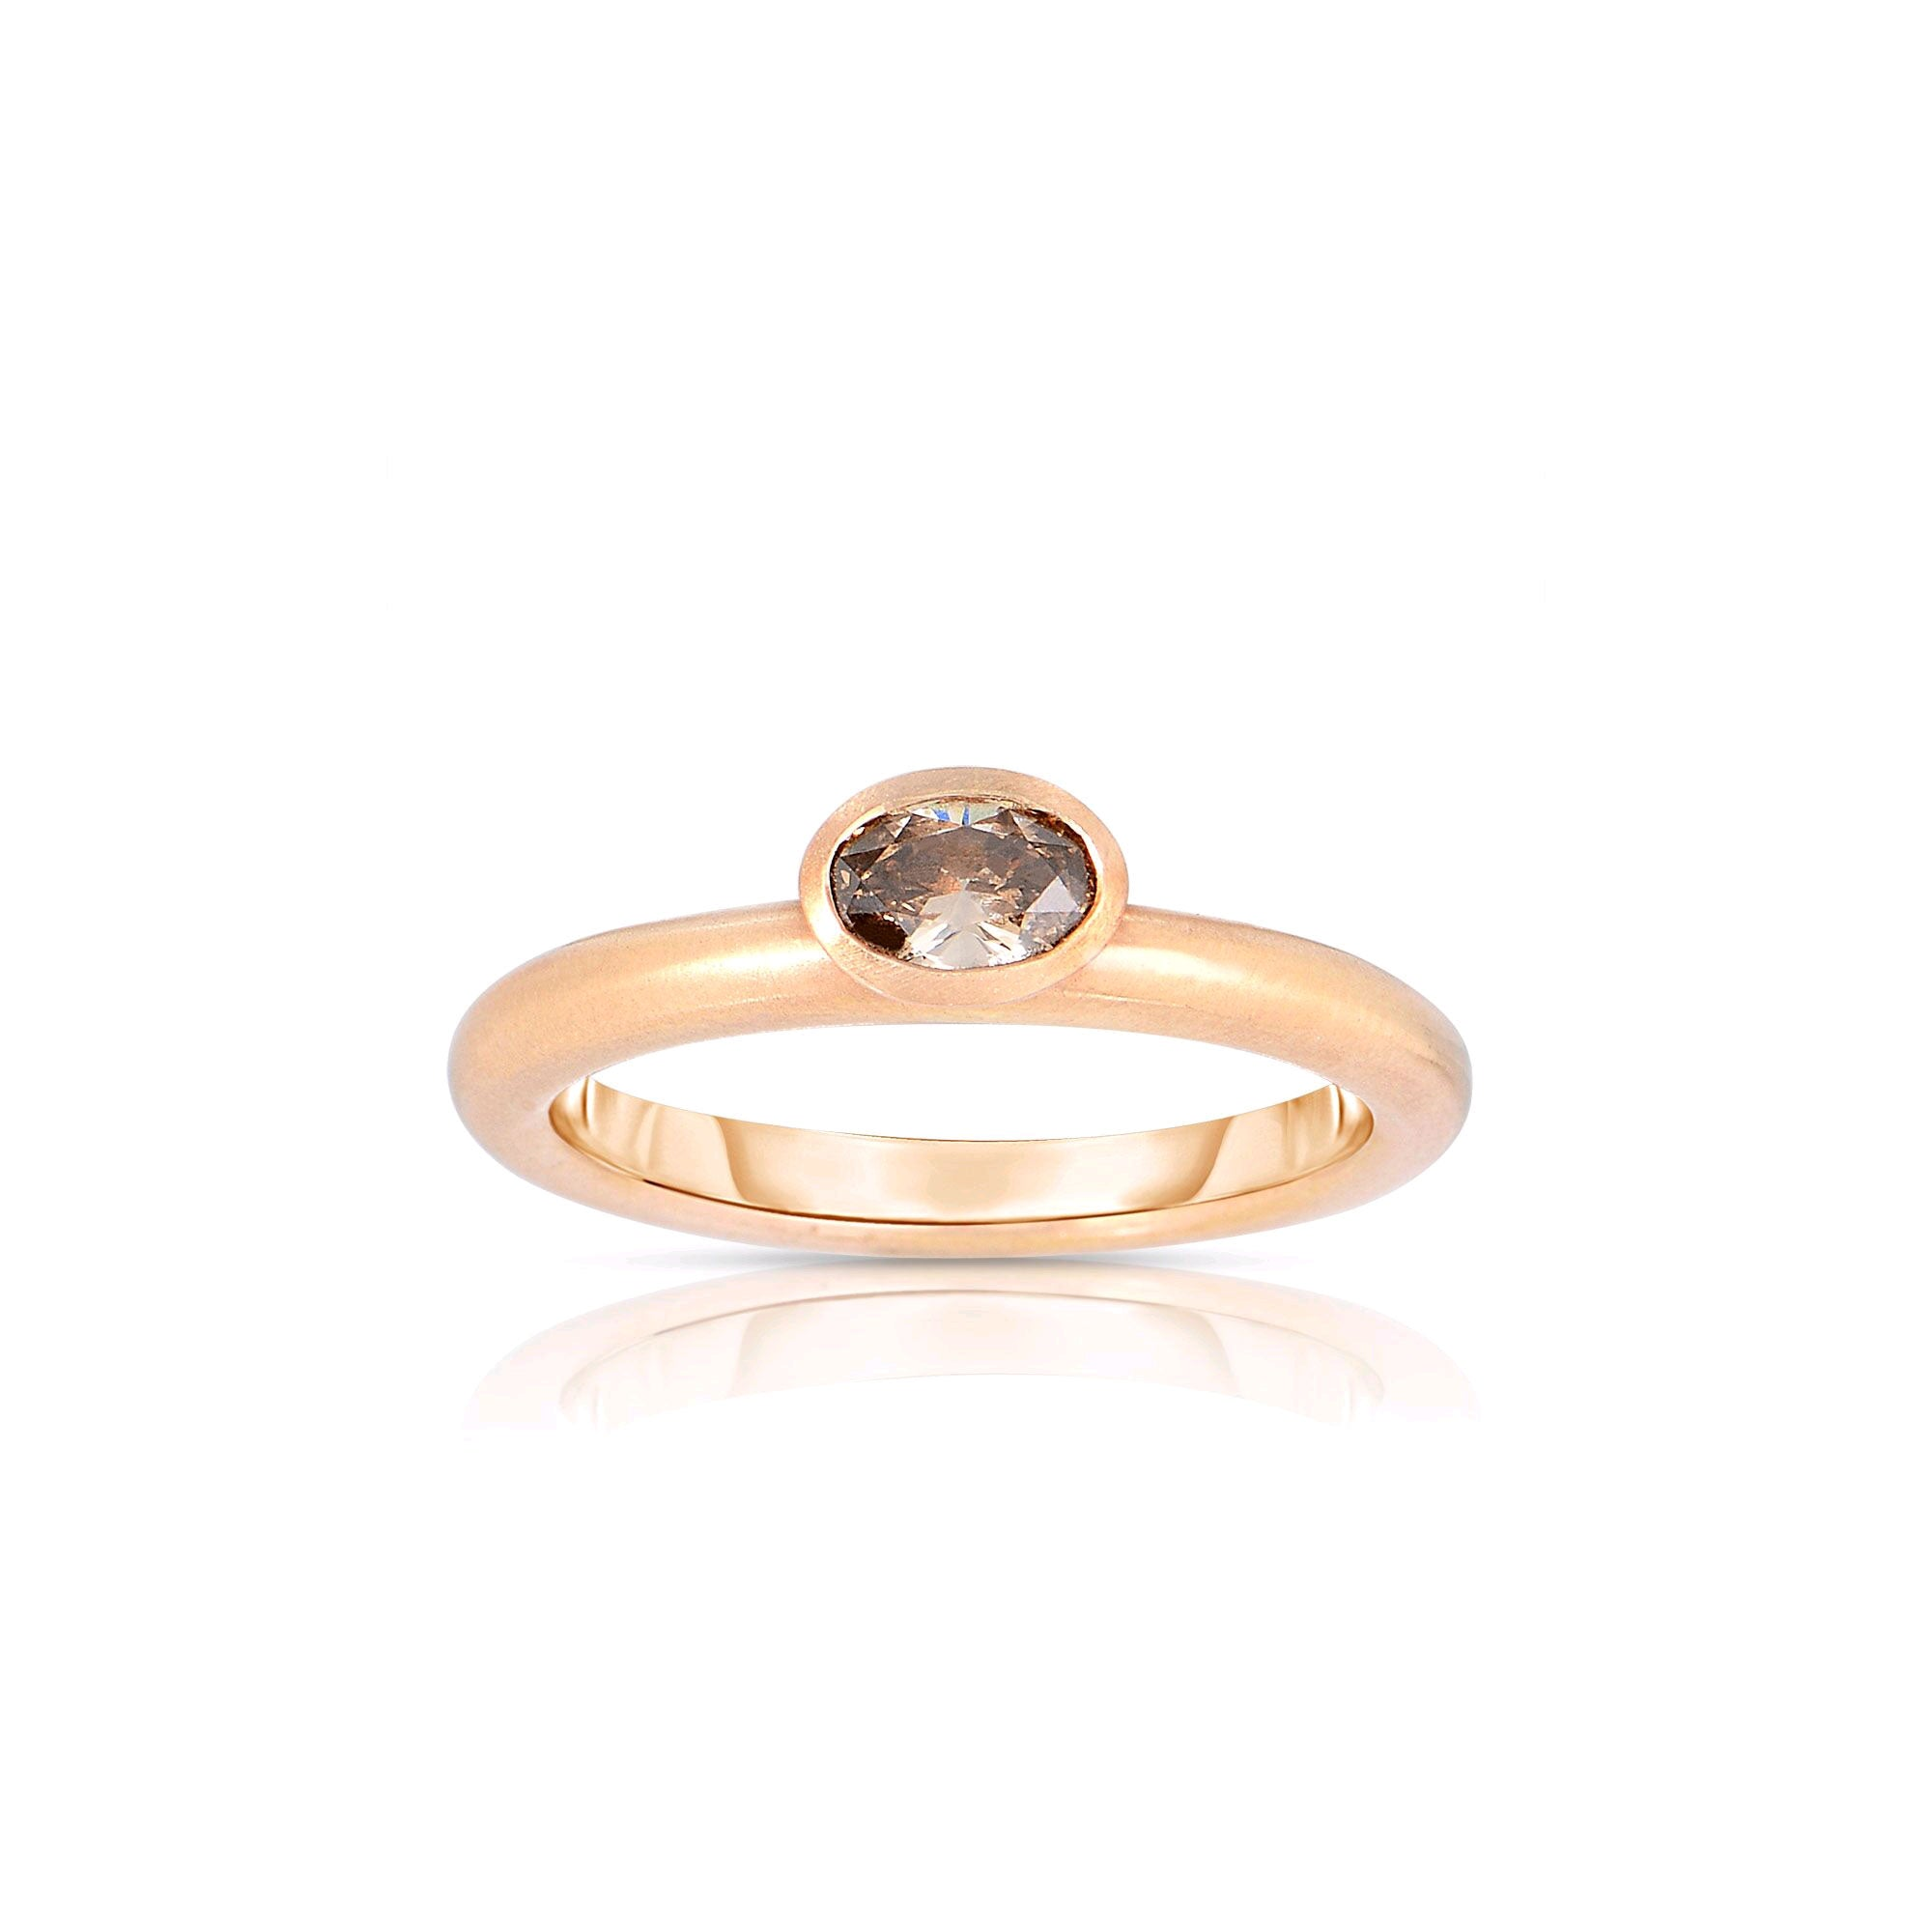 Oval Fancy Brown Diamond Ring, 18K Rose Gold